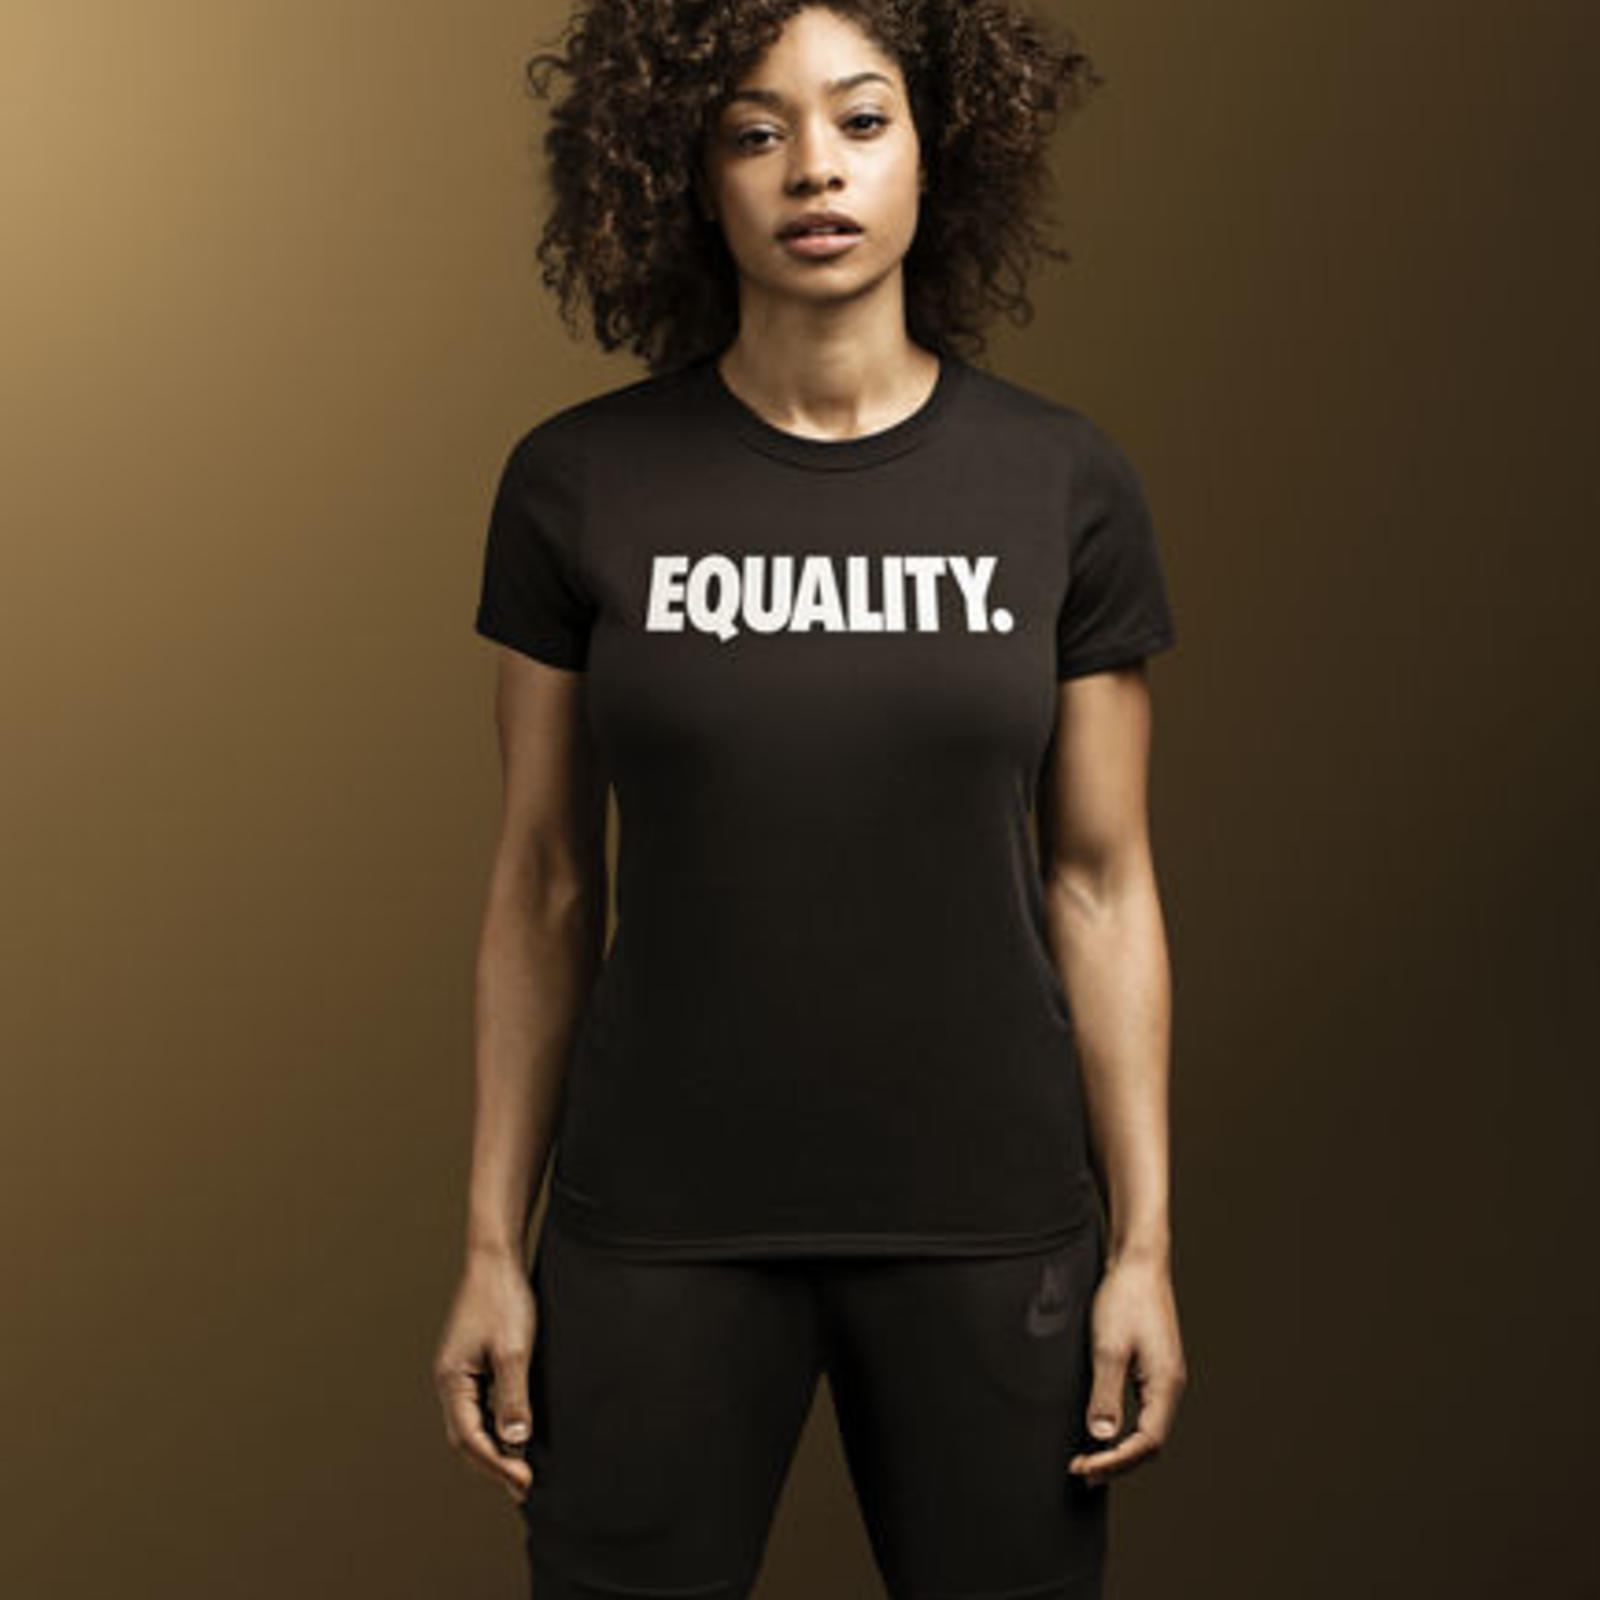 Sp17 equality womenstee na 1080 square 1600